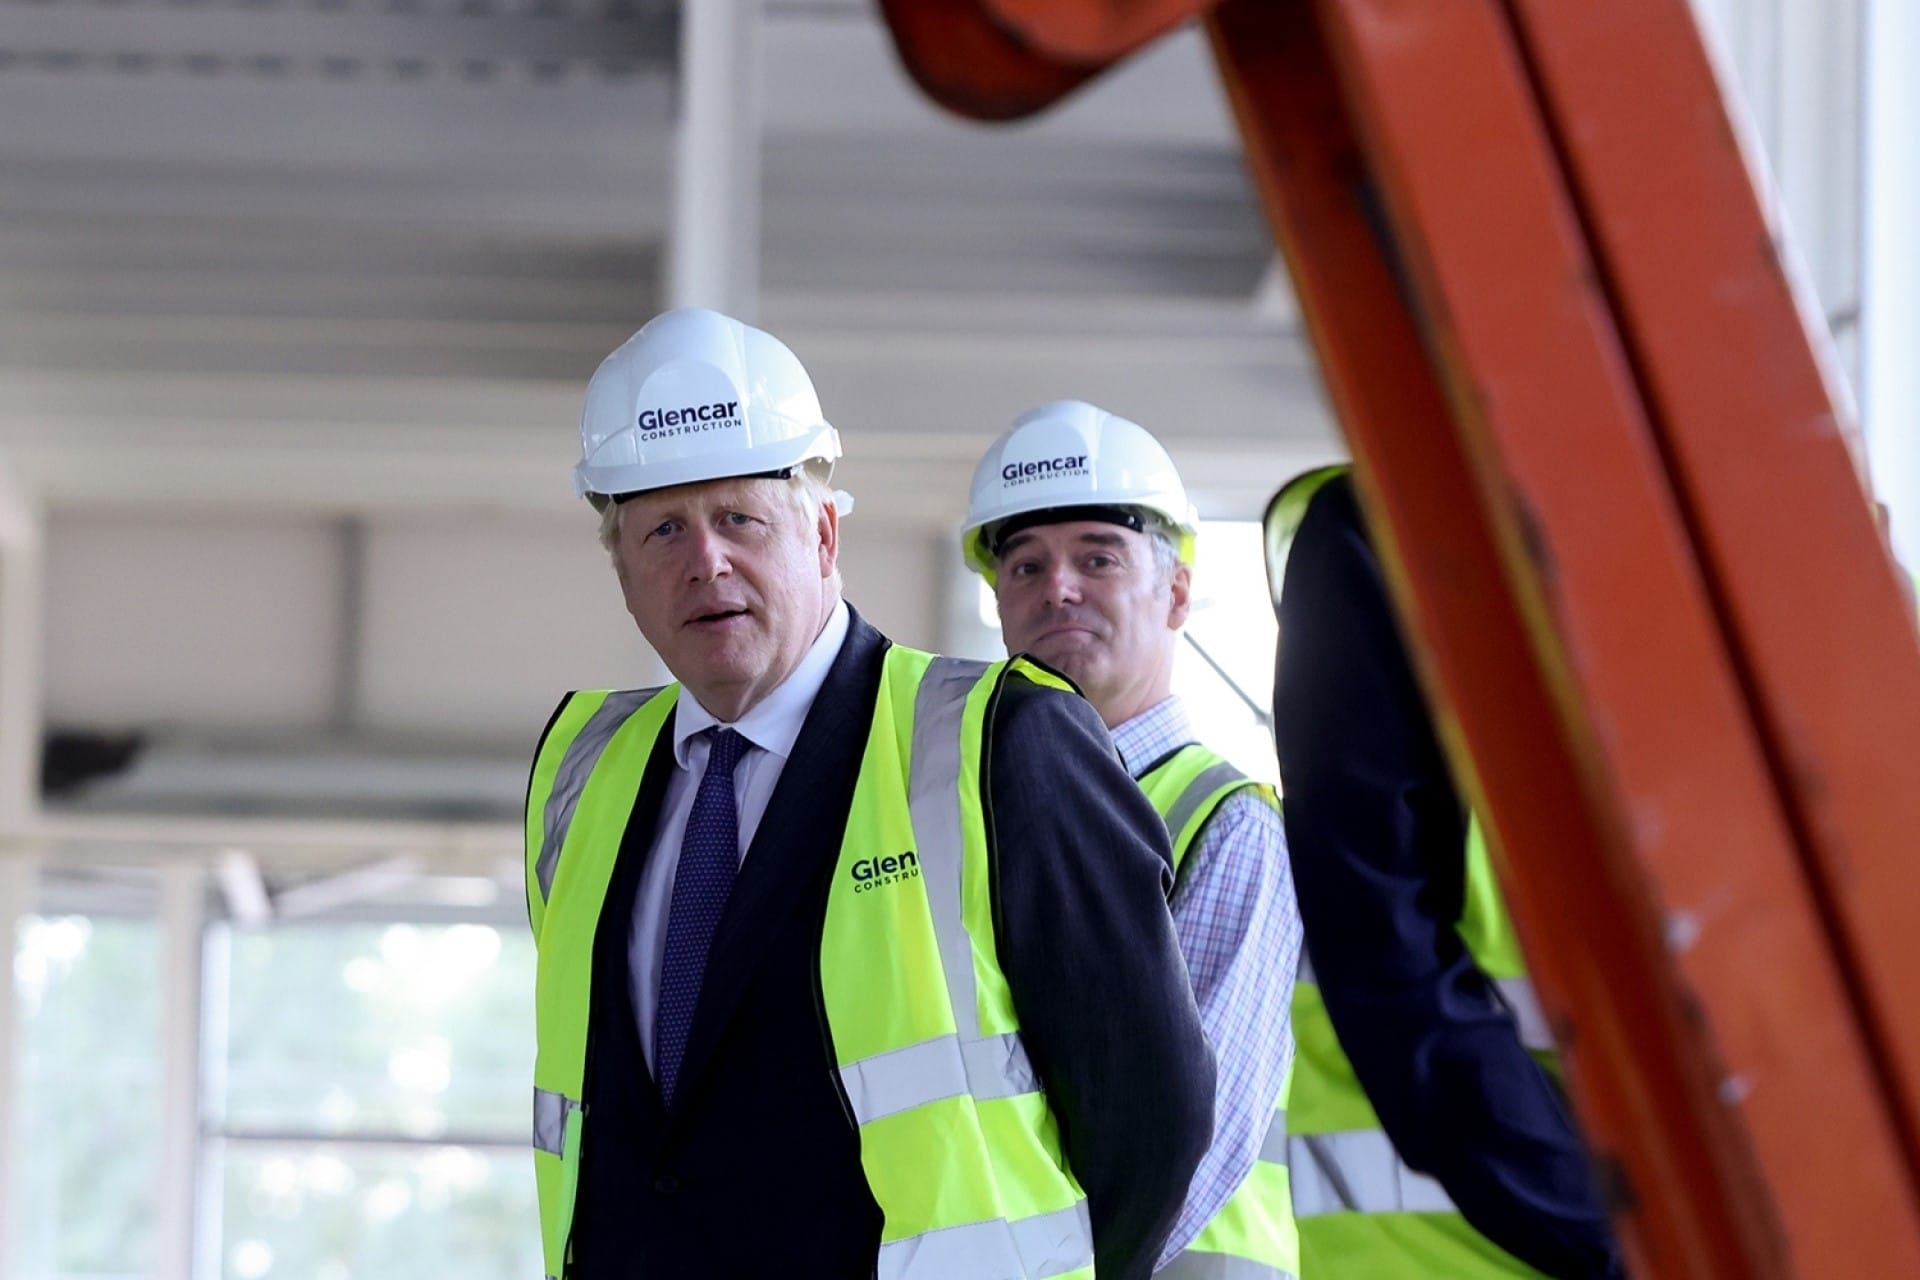 G7 health summit highlights Oxfordshire's thriving life sciences sector. Image shows PM Boris Johnson visiting the Vaccines Manufacturing Innovation Centre